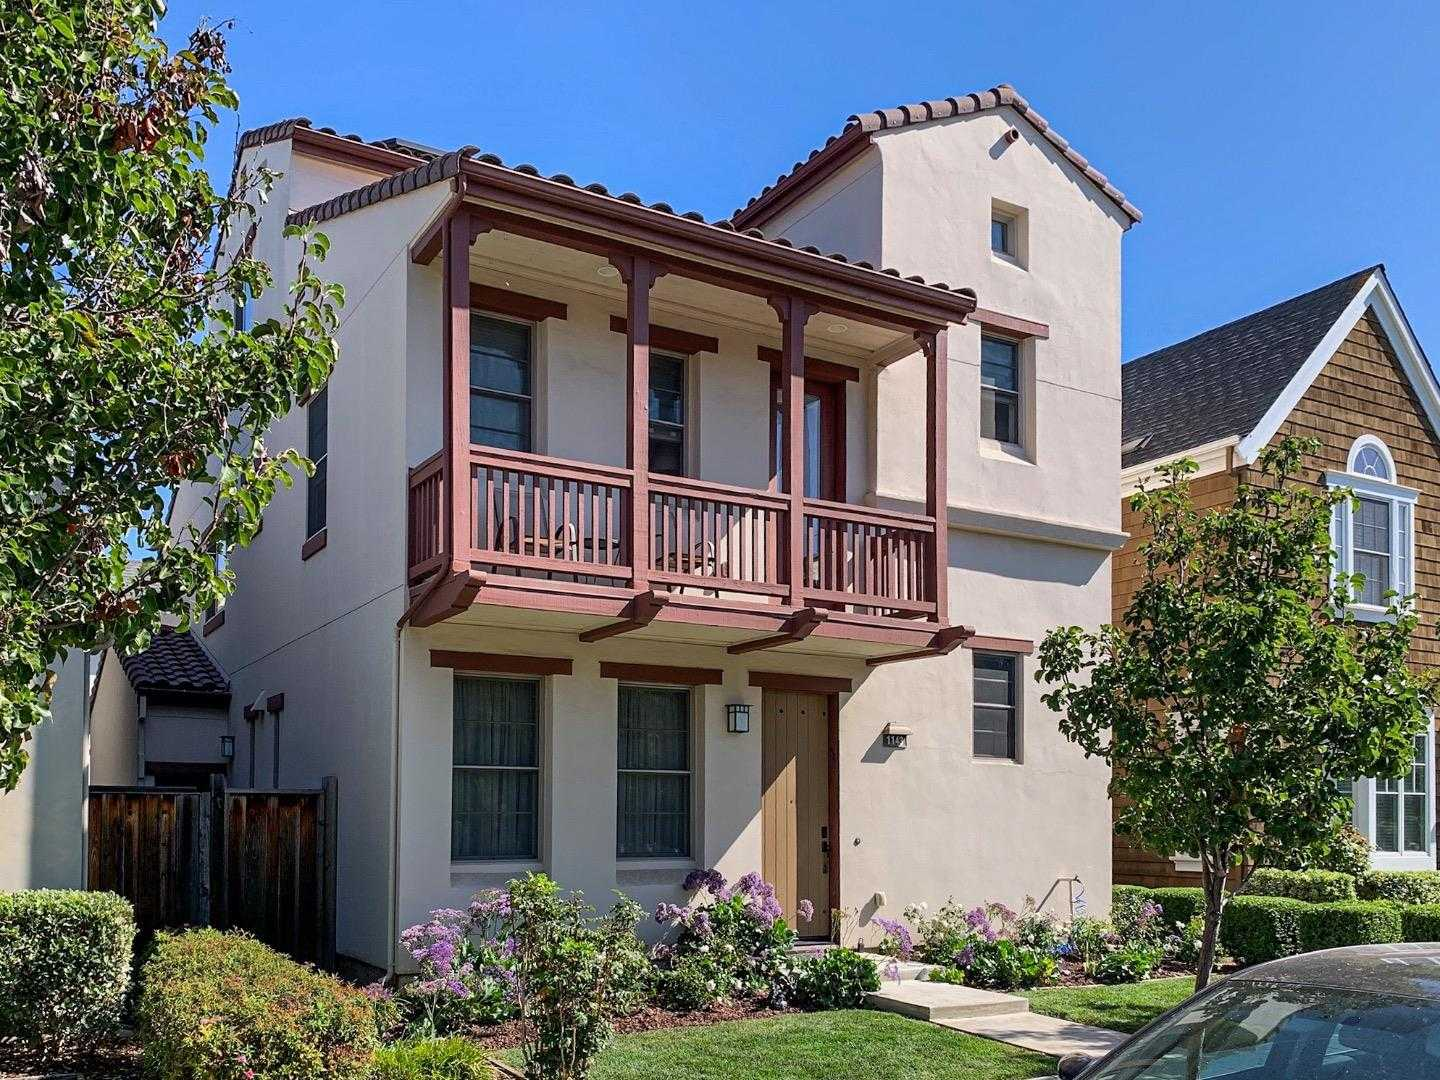 $2,598,000 - 4Br/3Ba -  for Sale in Mountain View